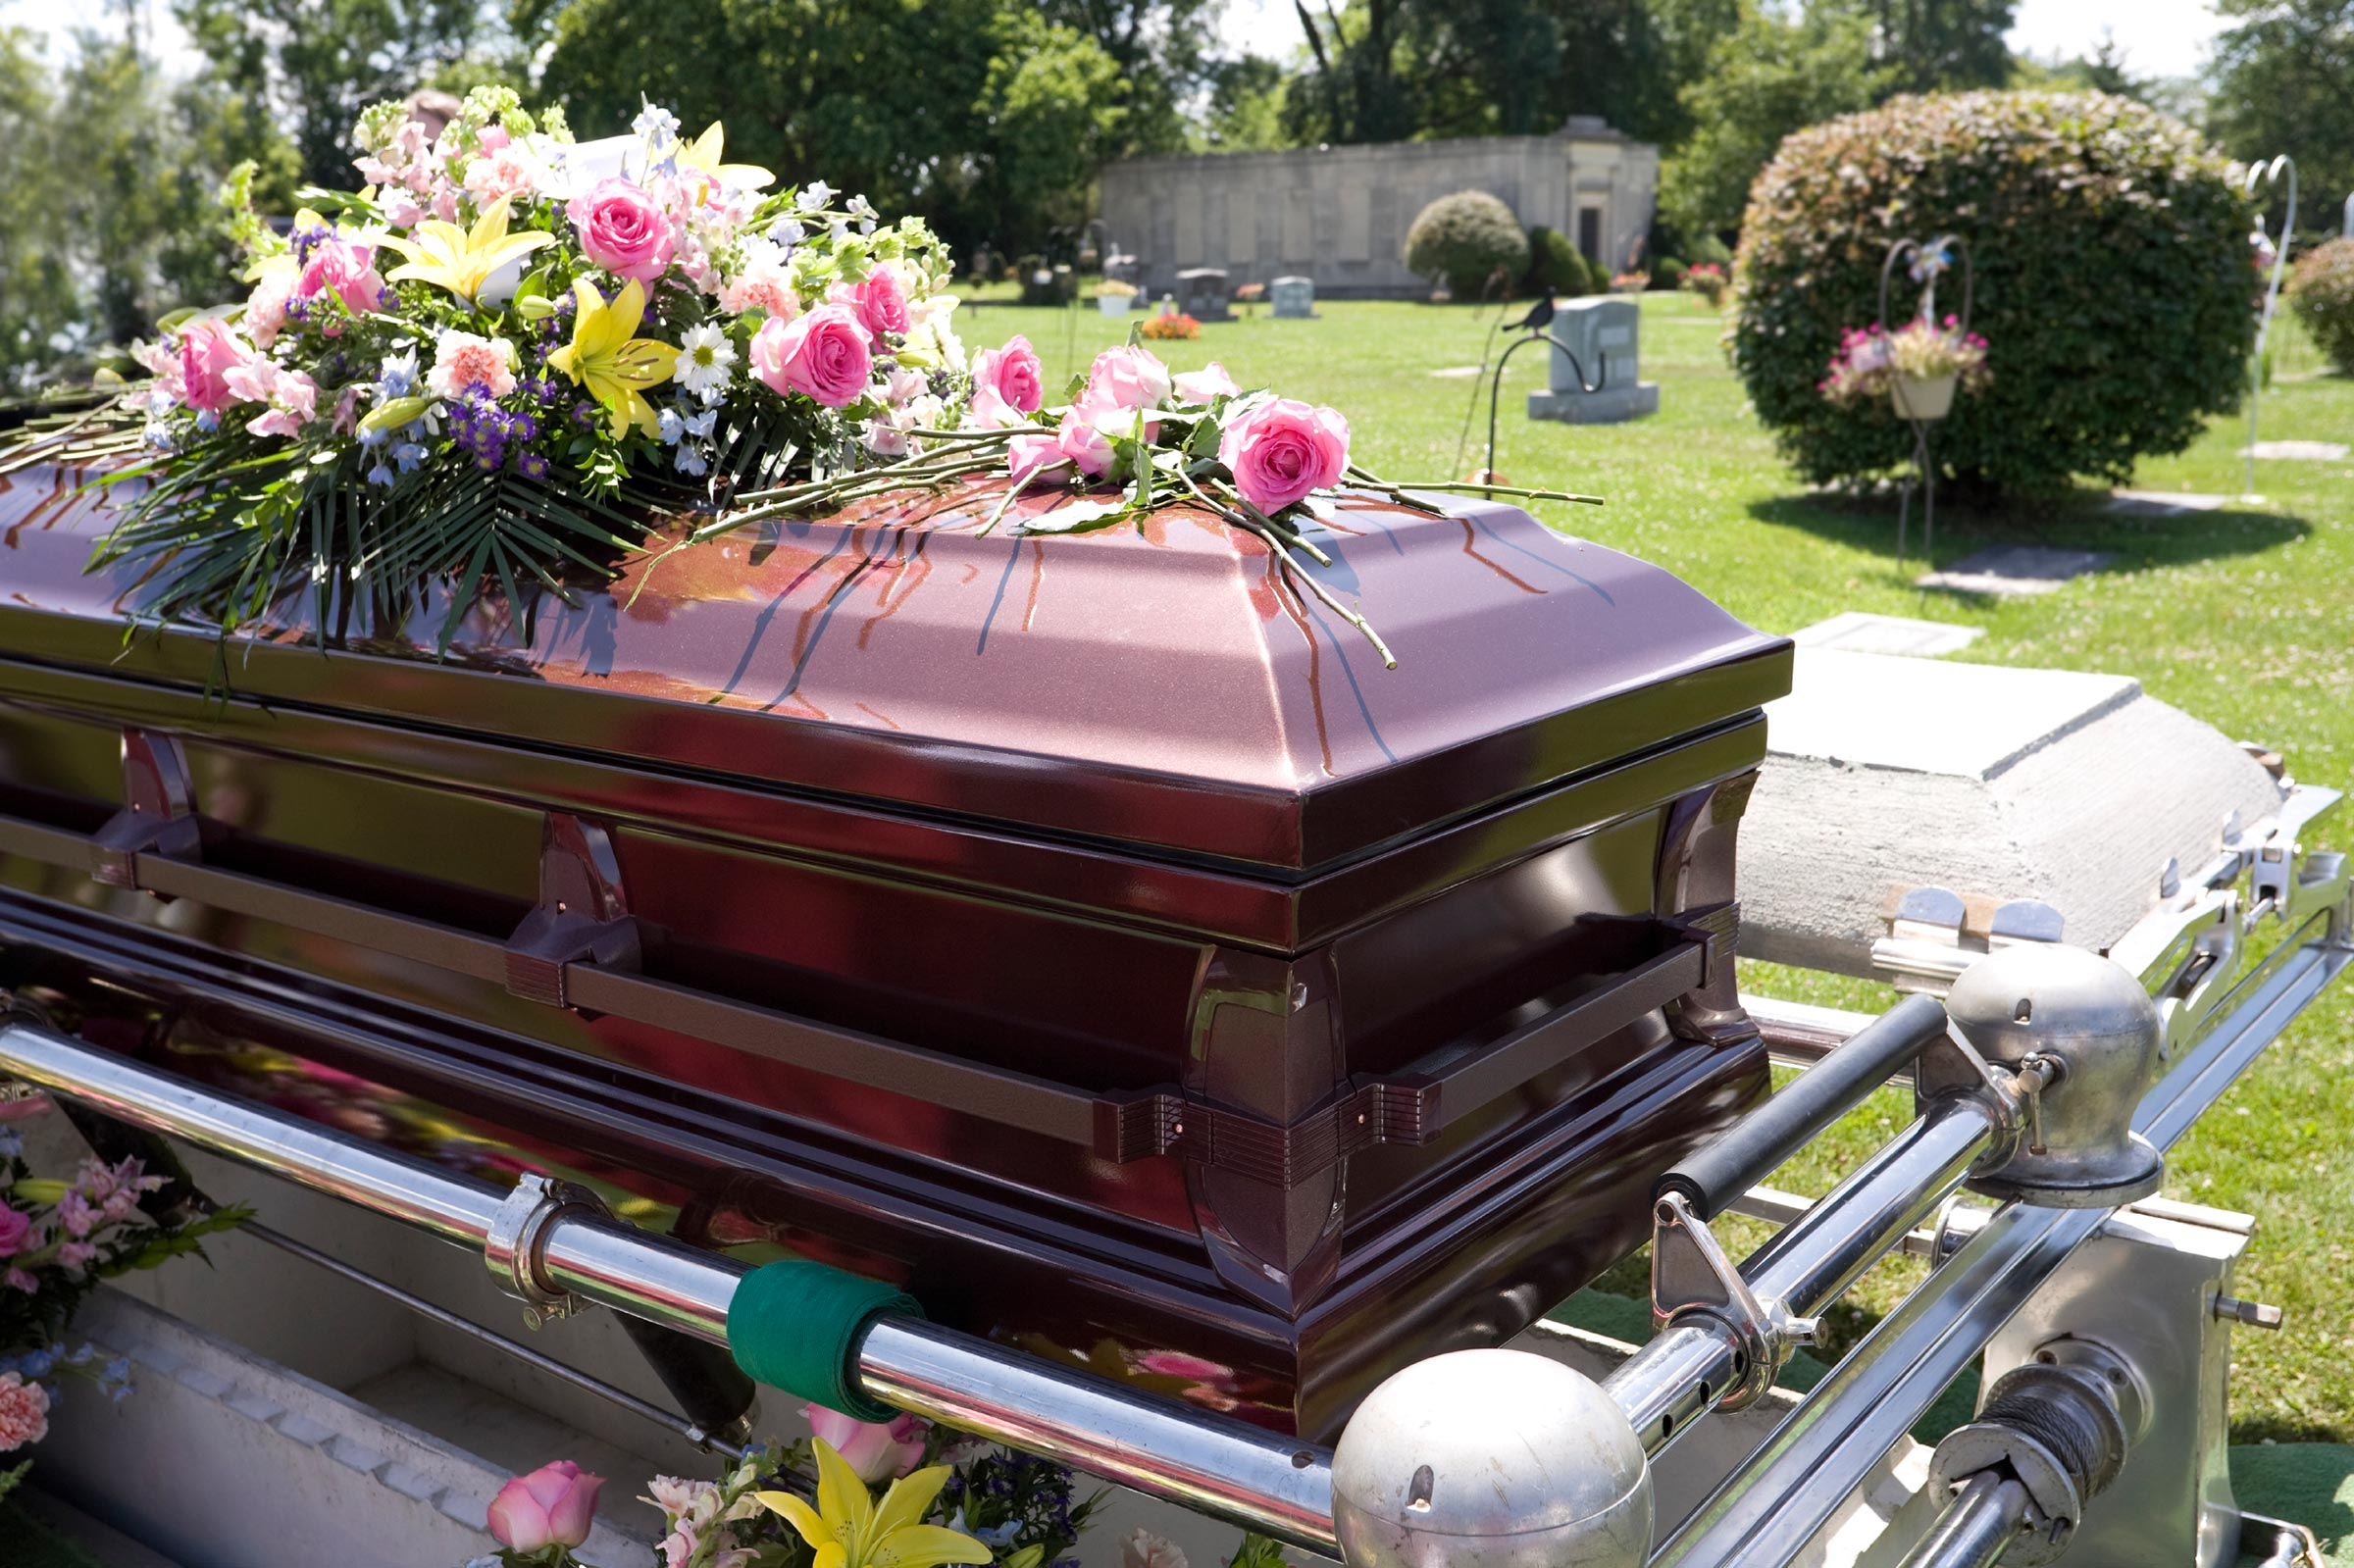 SEE VIDEO: Children drag father's corpse from casket at burial after he abandoned them for 40+ years